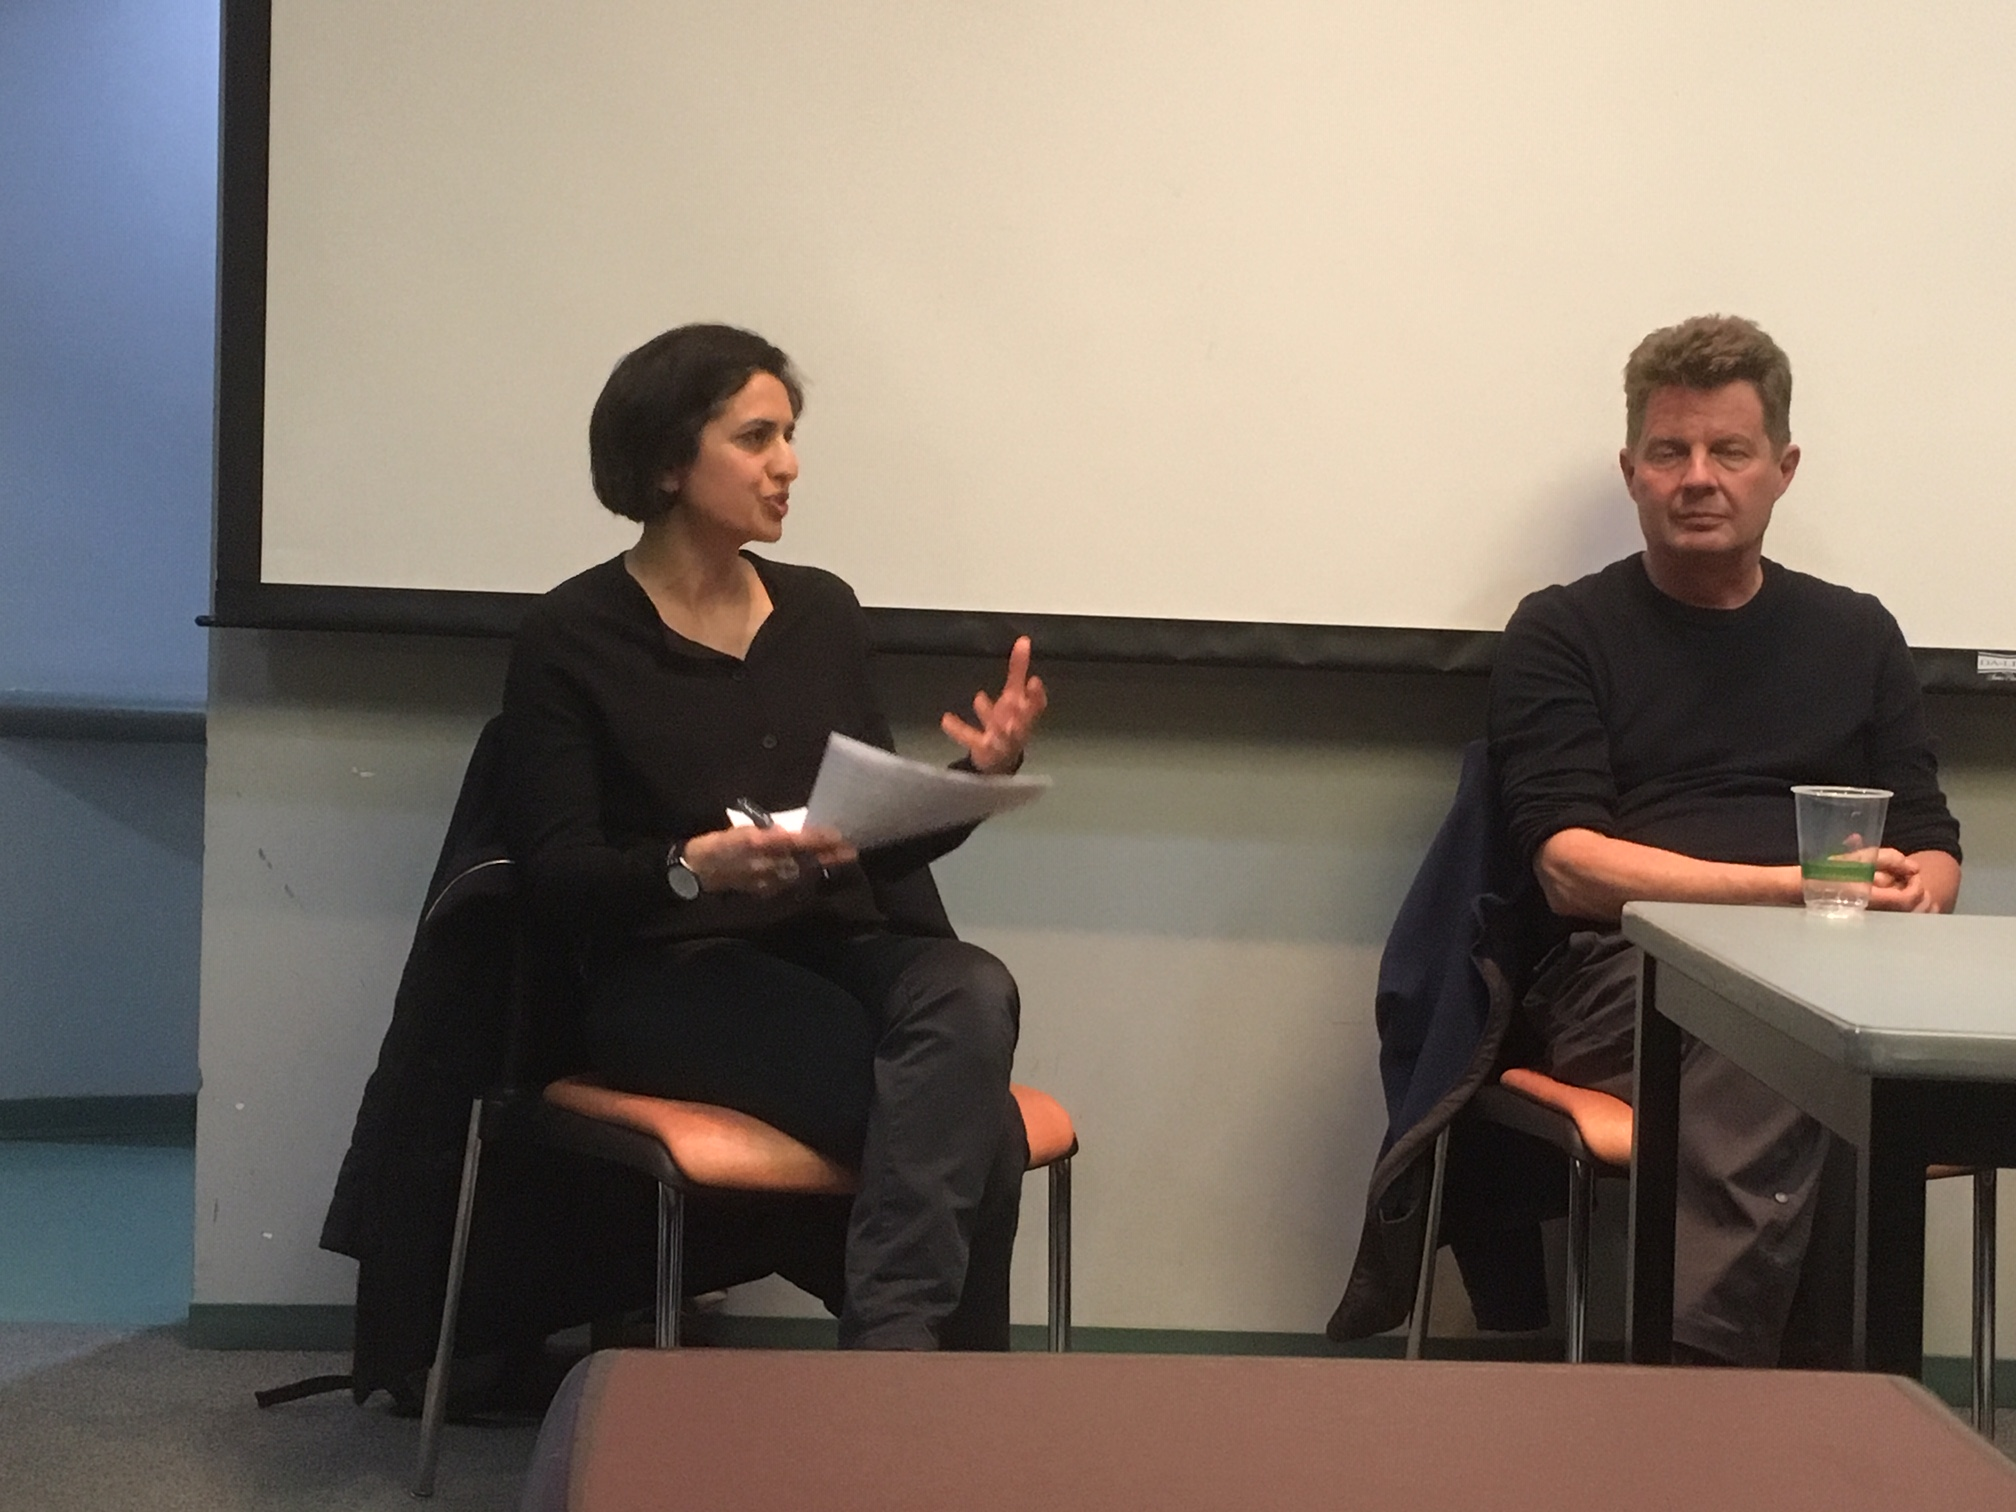 Colonial Lives of Property Panel - SFU Harbour Centre - April 9, 2019 (2).JPG